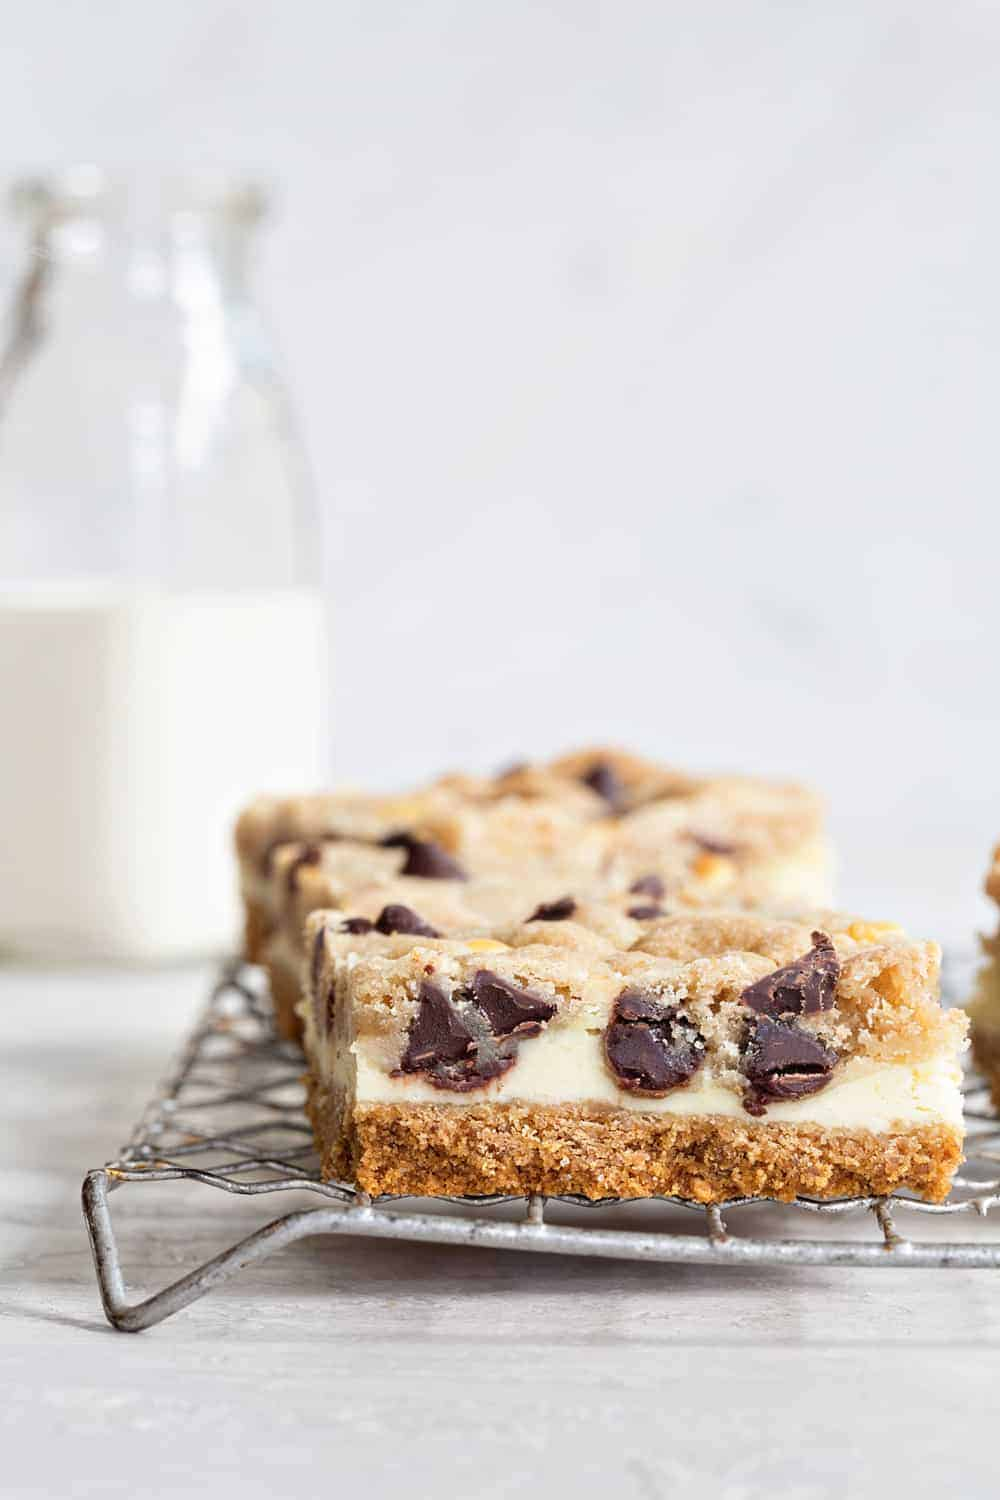 Cookie Dough Cheesecake Bars are fun twist on two classic desserts. So delish!